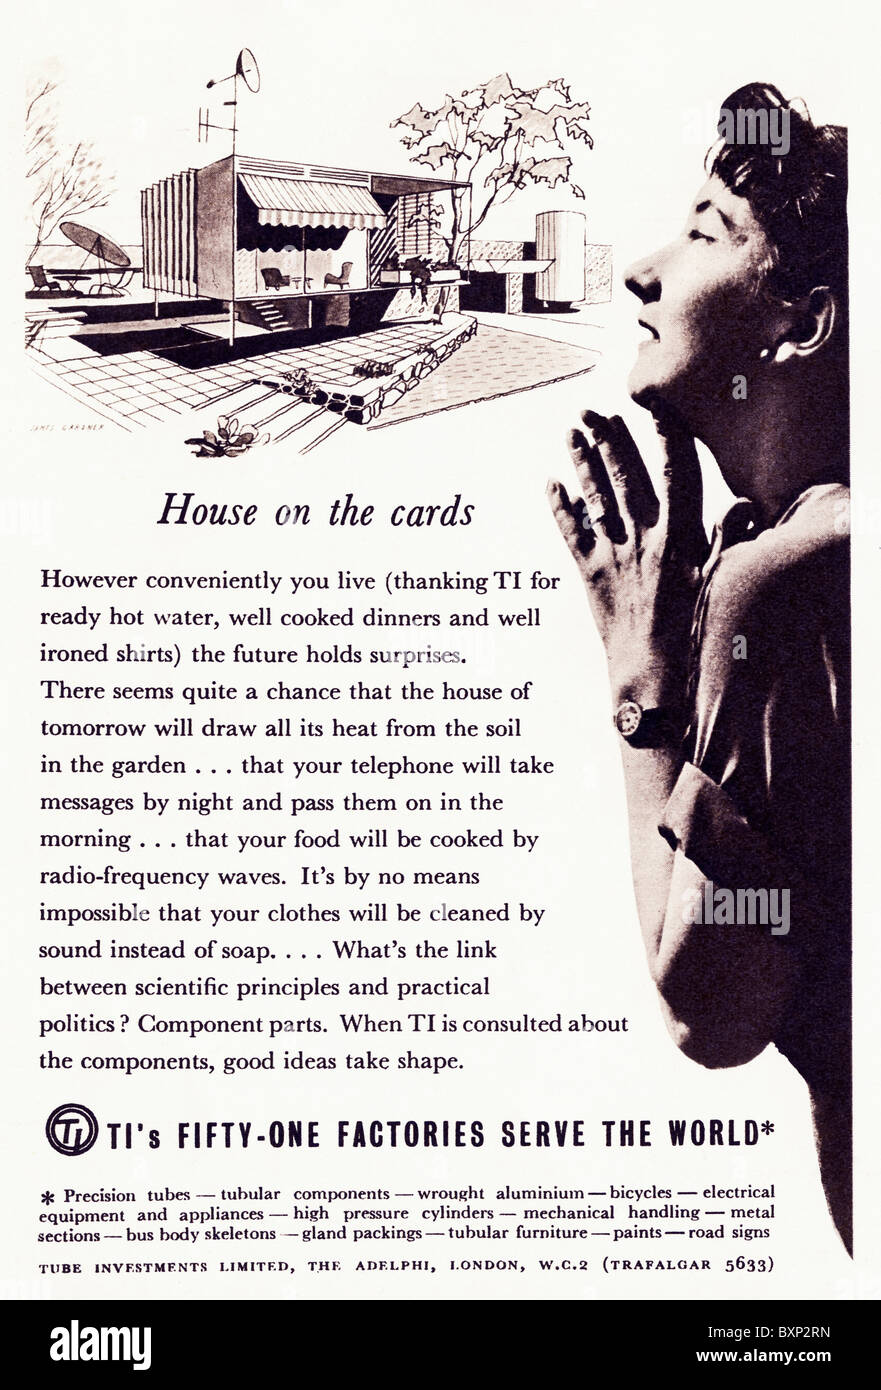 Magazine advertisement used circa 1952 for TI Tube Investments Limited - Stock Image